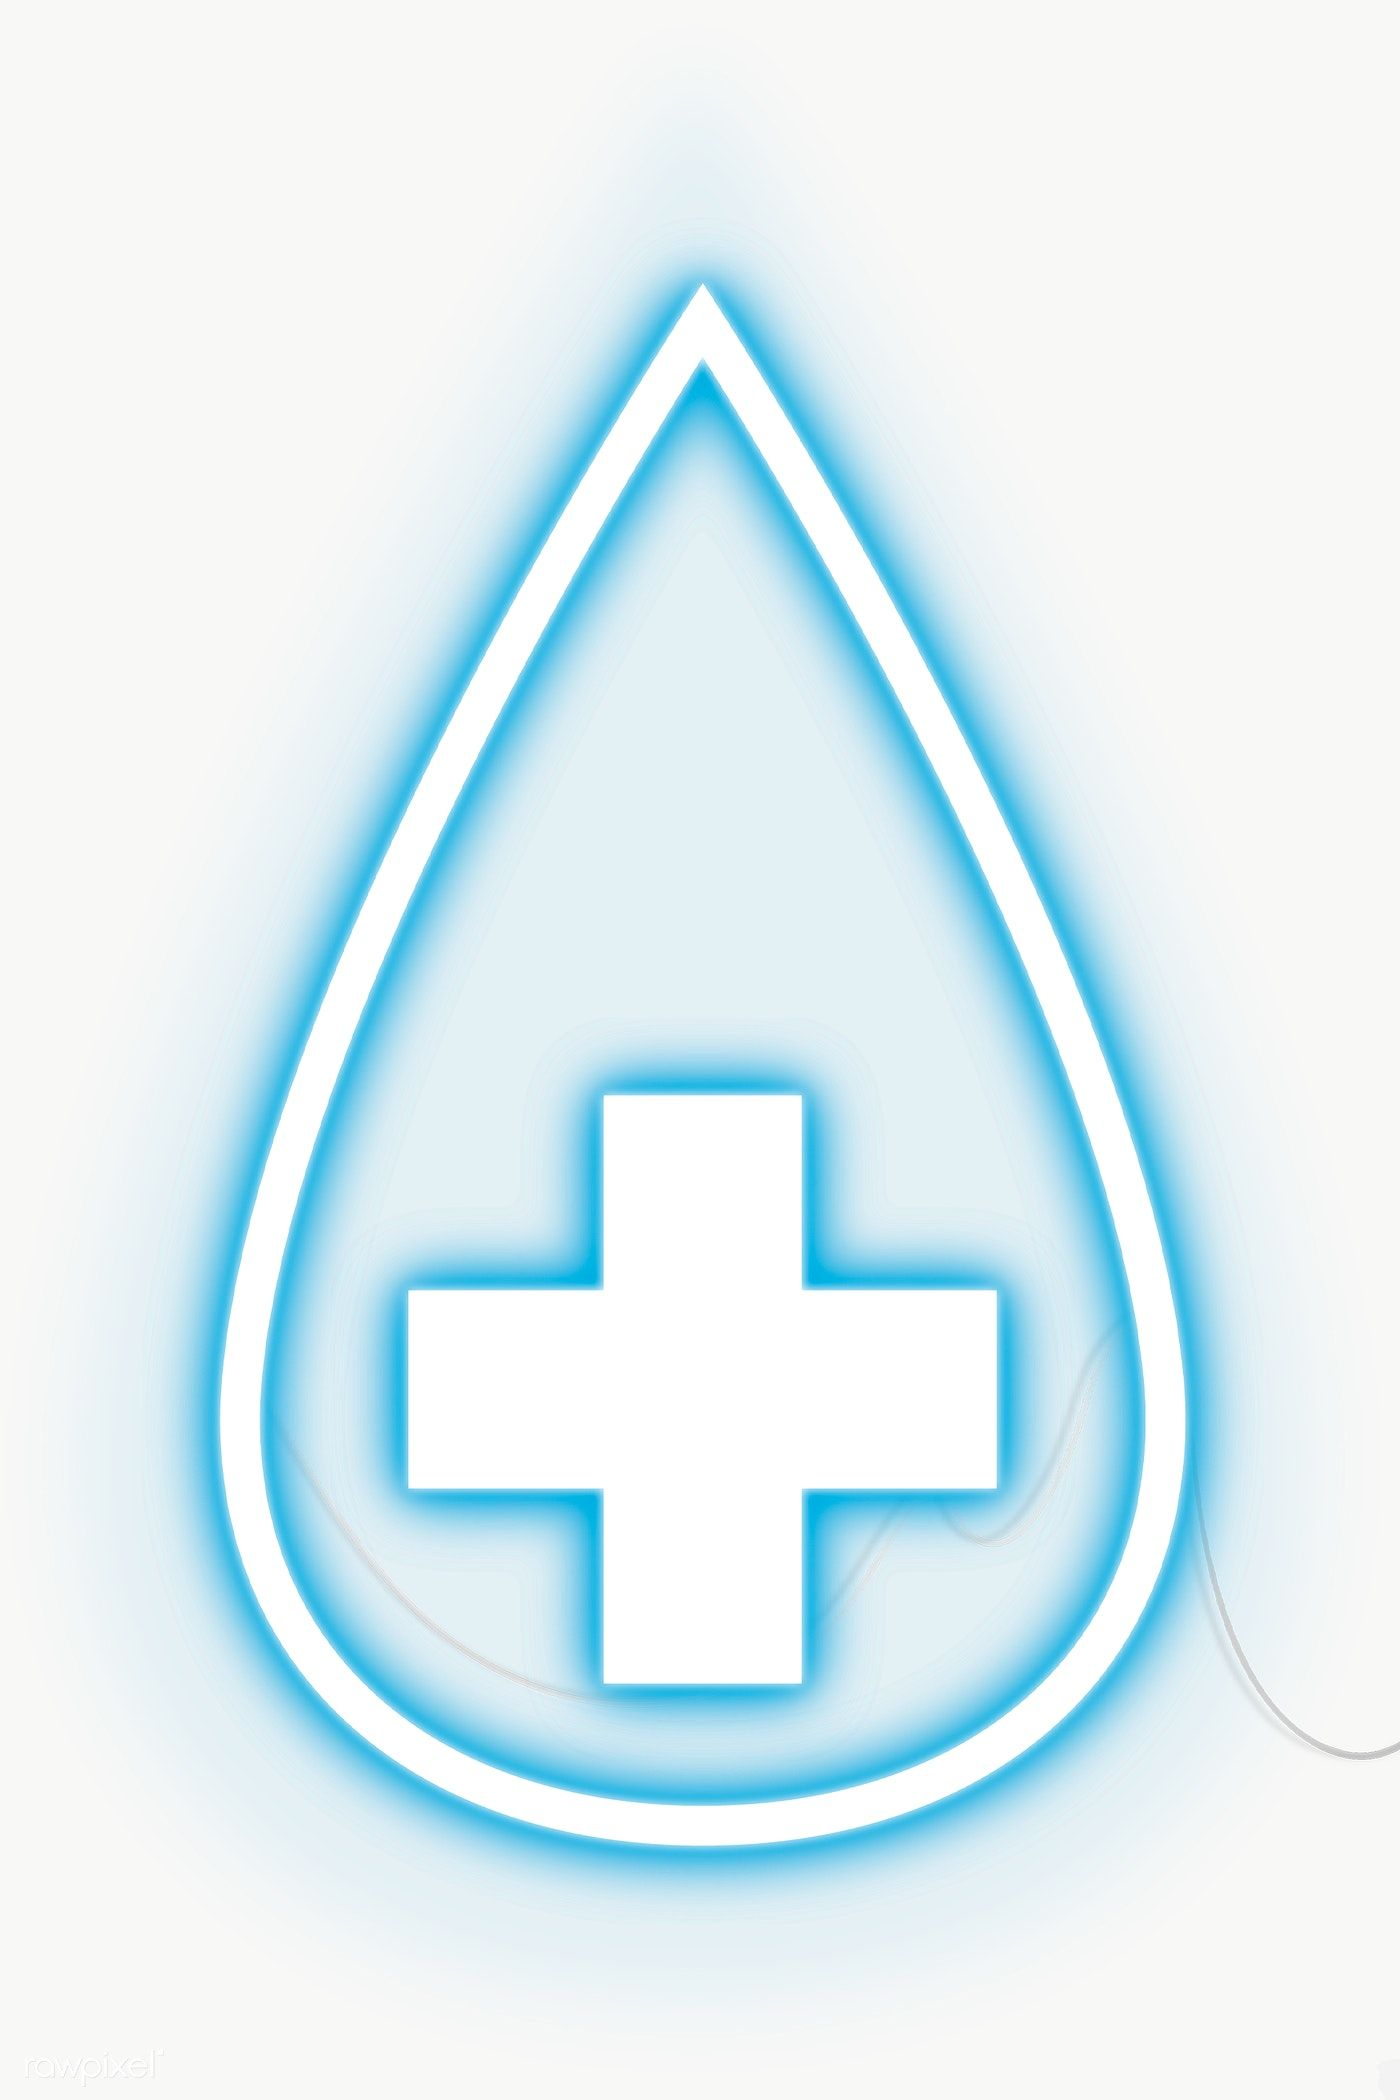 Blue Sanitise Neon Icon Transparent Png Free Image By Rawpixel Com Chayanit Neon Png Free Illustrations Neon